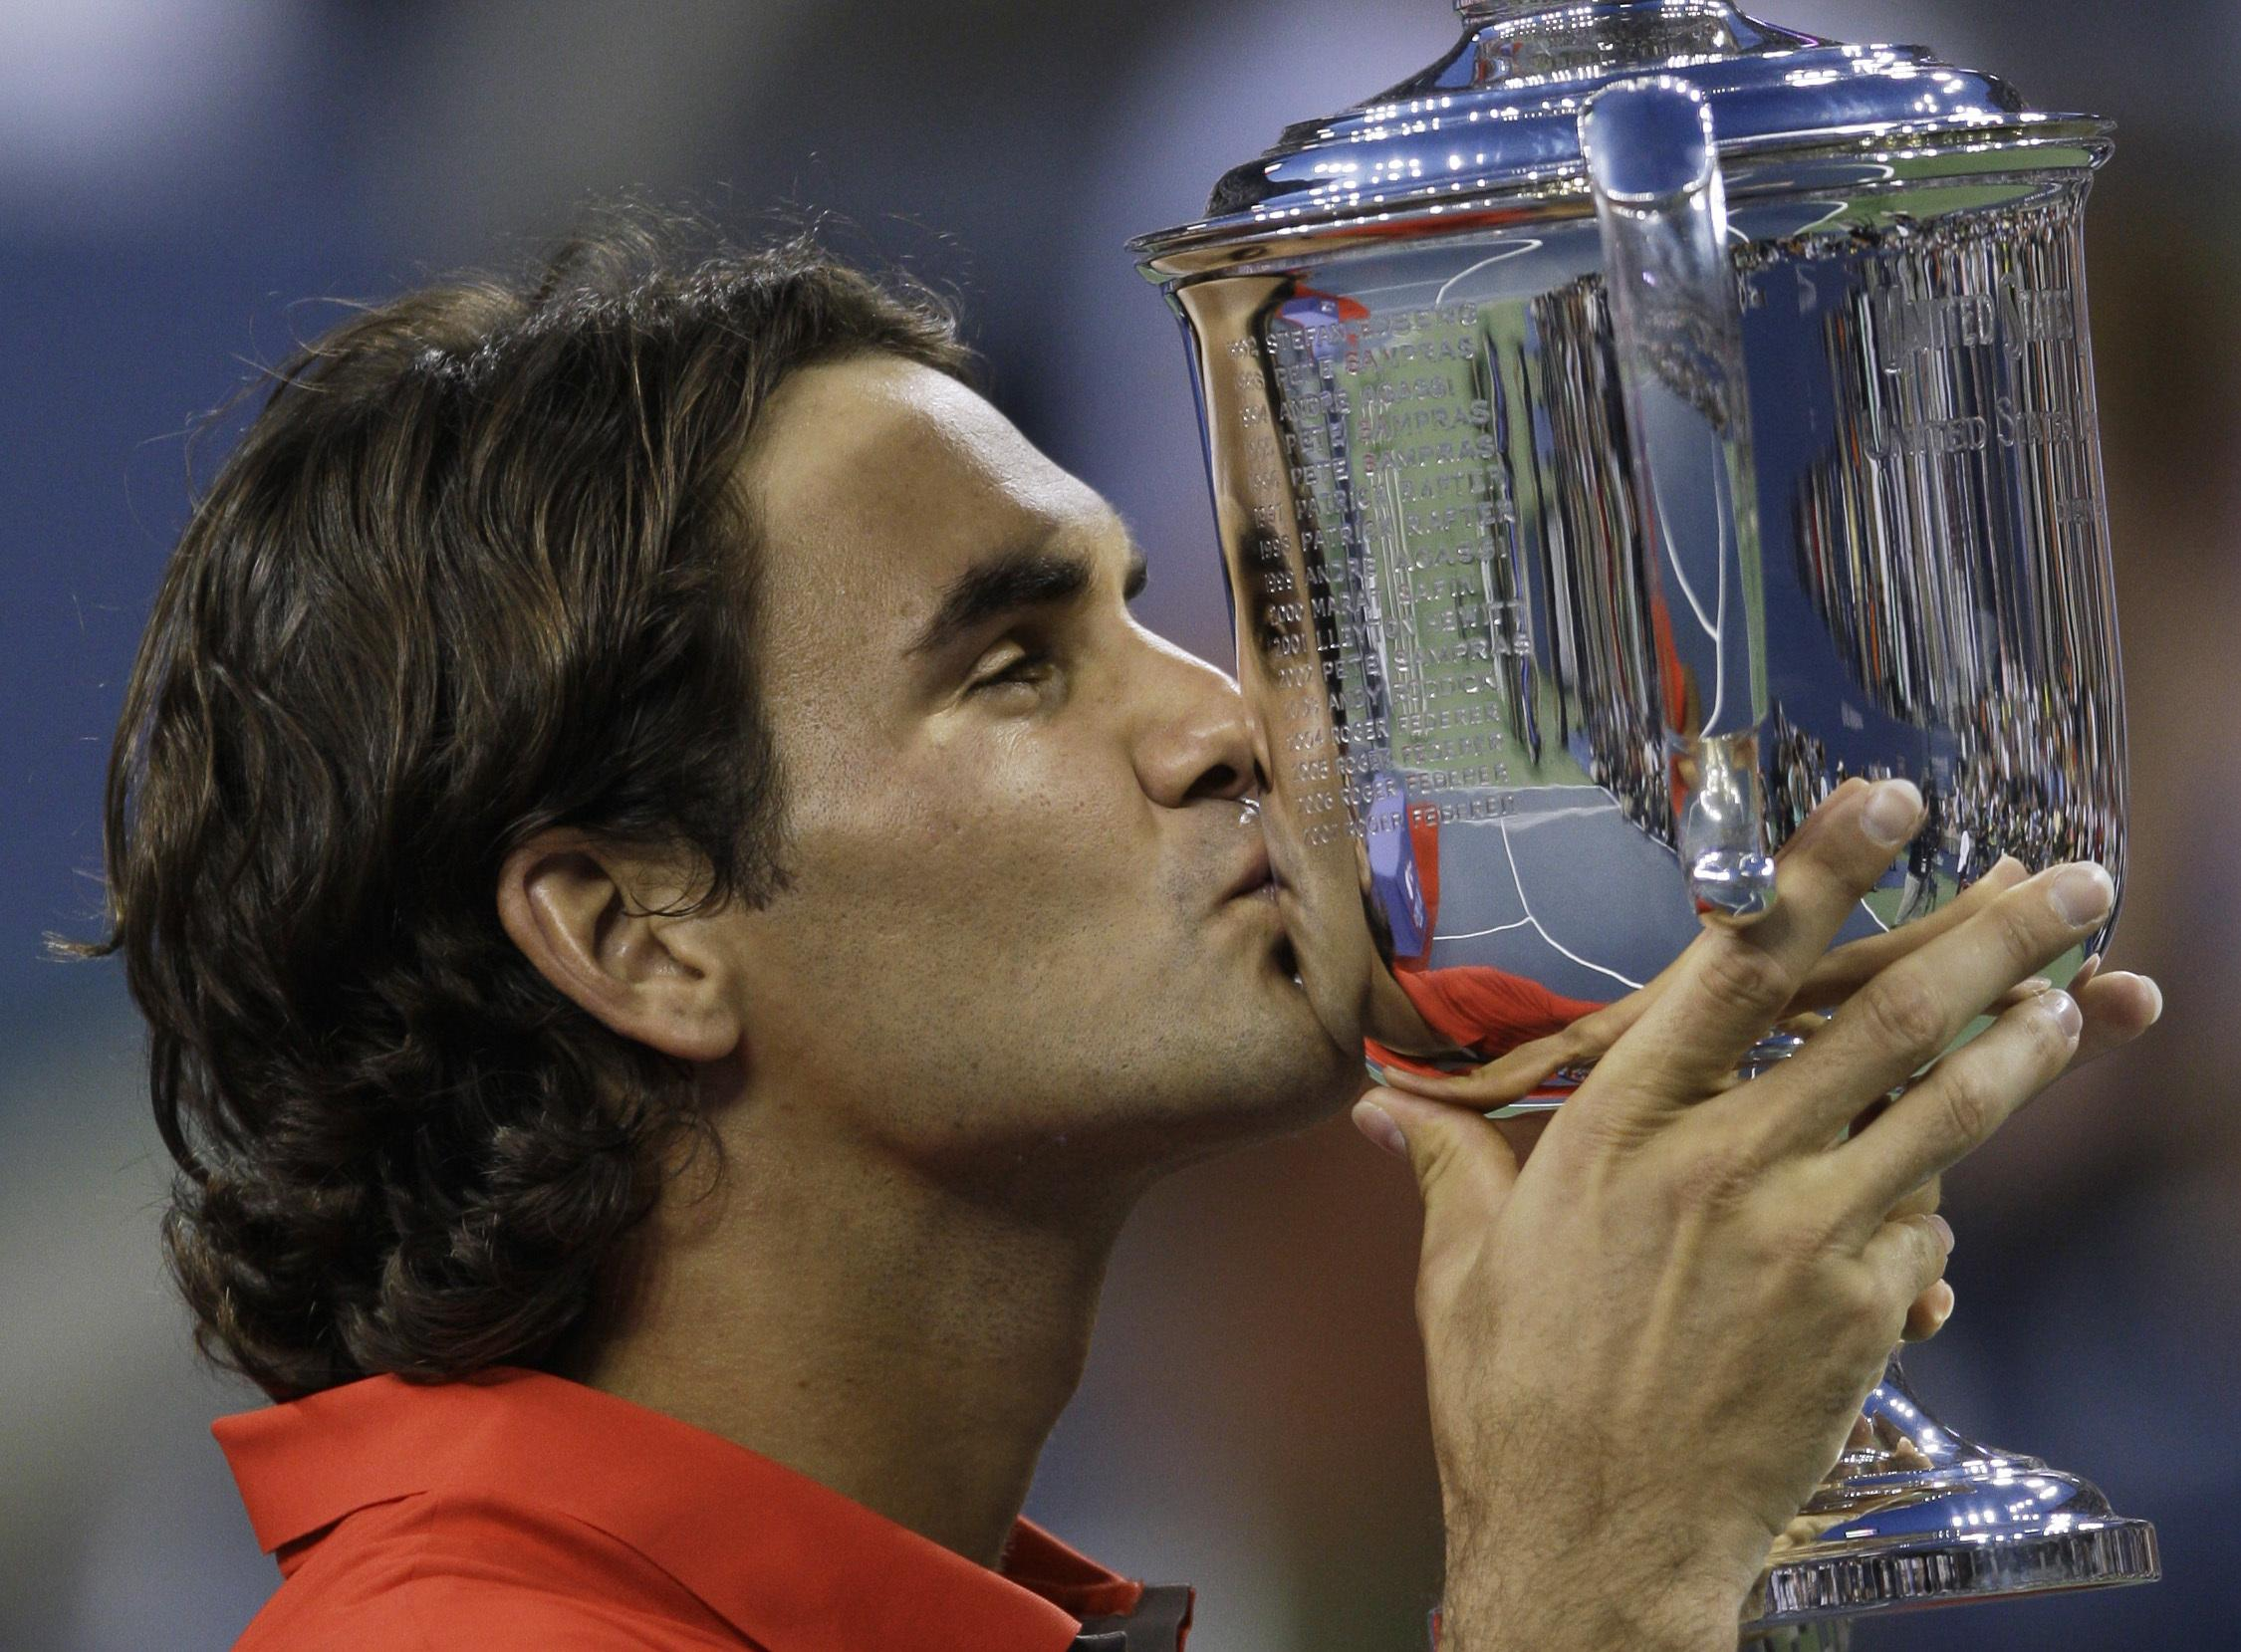 Federer last won the US Open in 2008, a decade ago